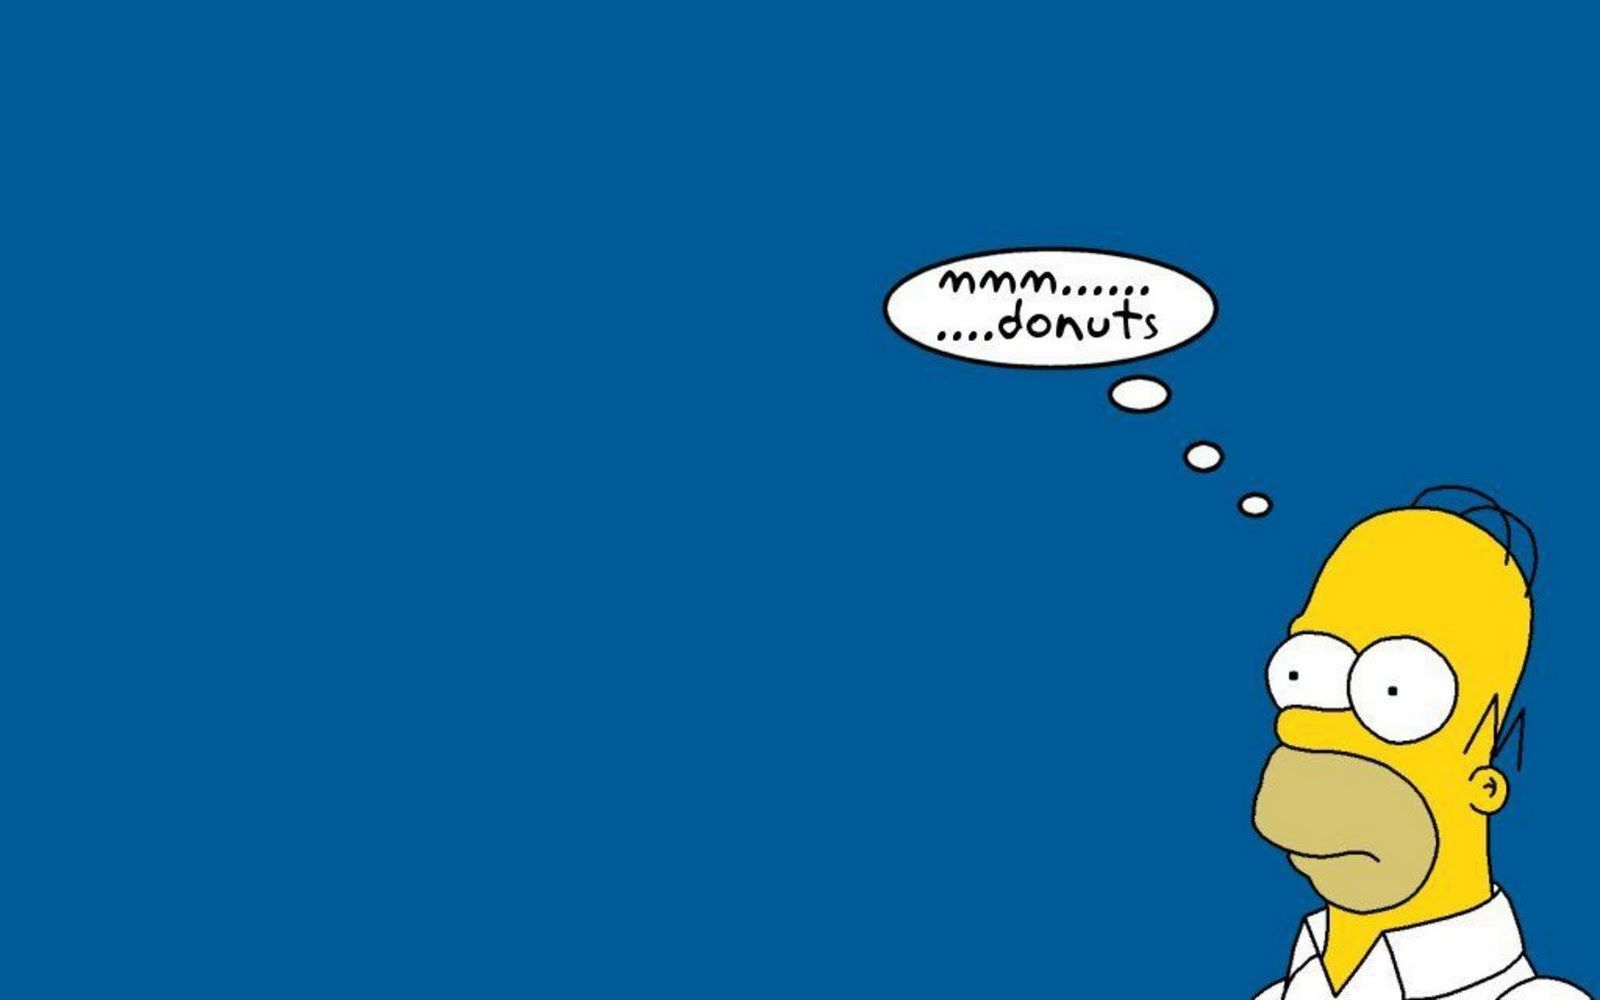 The Simpsons Full Hd Background 1600x1000 Simpsons Cartoon Cartoon Wallpaper The Simpsons